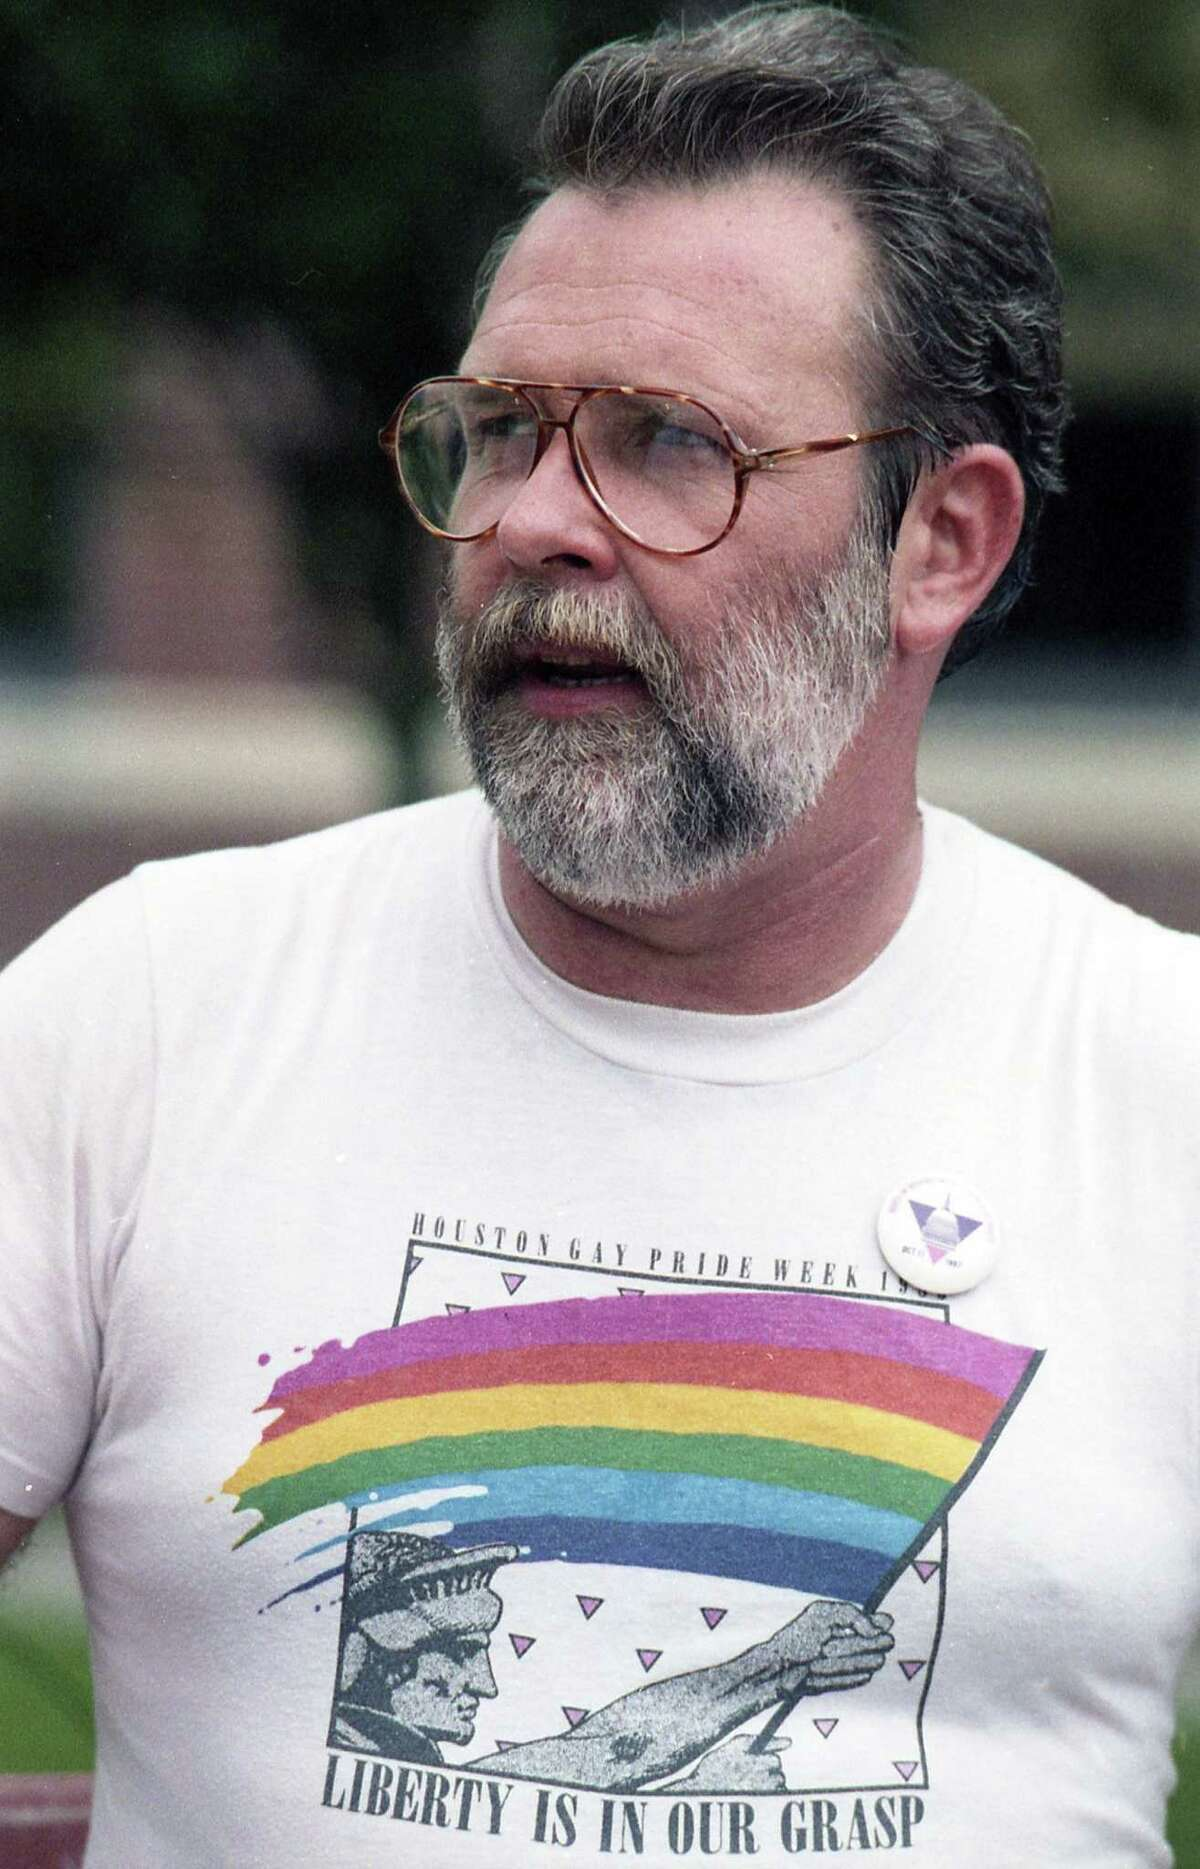 Houston gay rights activist Ray Hill after winning a Supreme Court ruling that struck down a 101-year-old Houston city ordinance prohibiting citizens from interrupting police officers in the execution of their duties.The high court ruled 8-1 that the ordinance violated the Constitution in trying to protect police from interference by the public, June 15, 1987